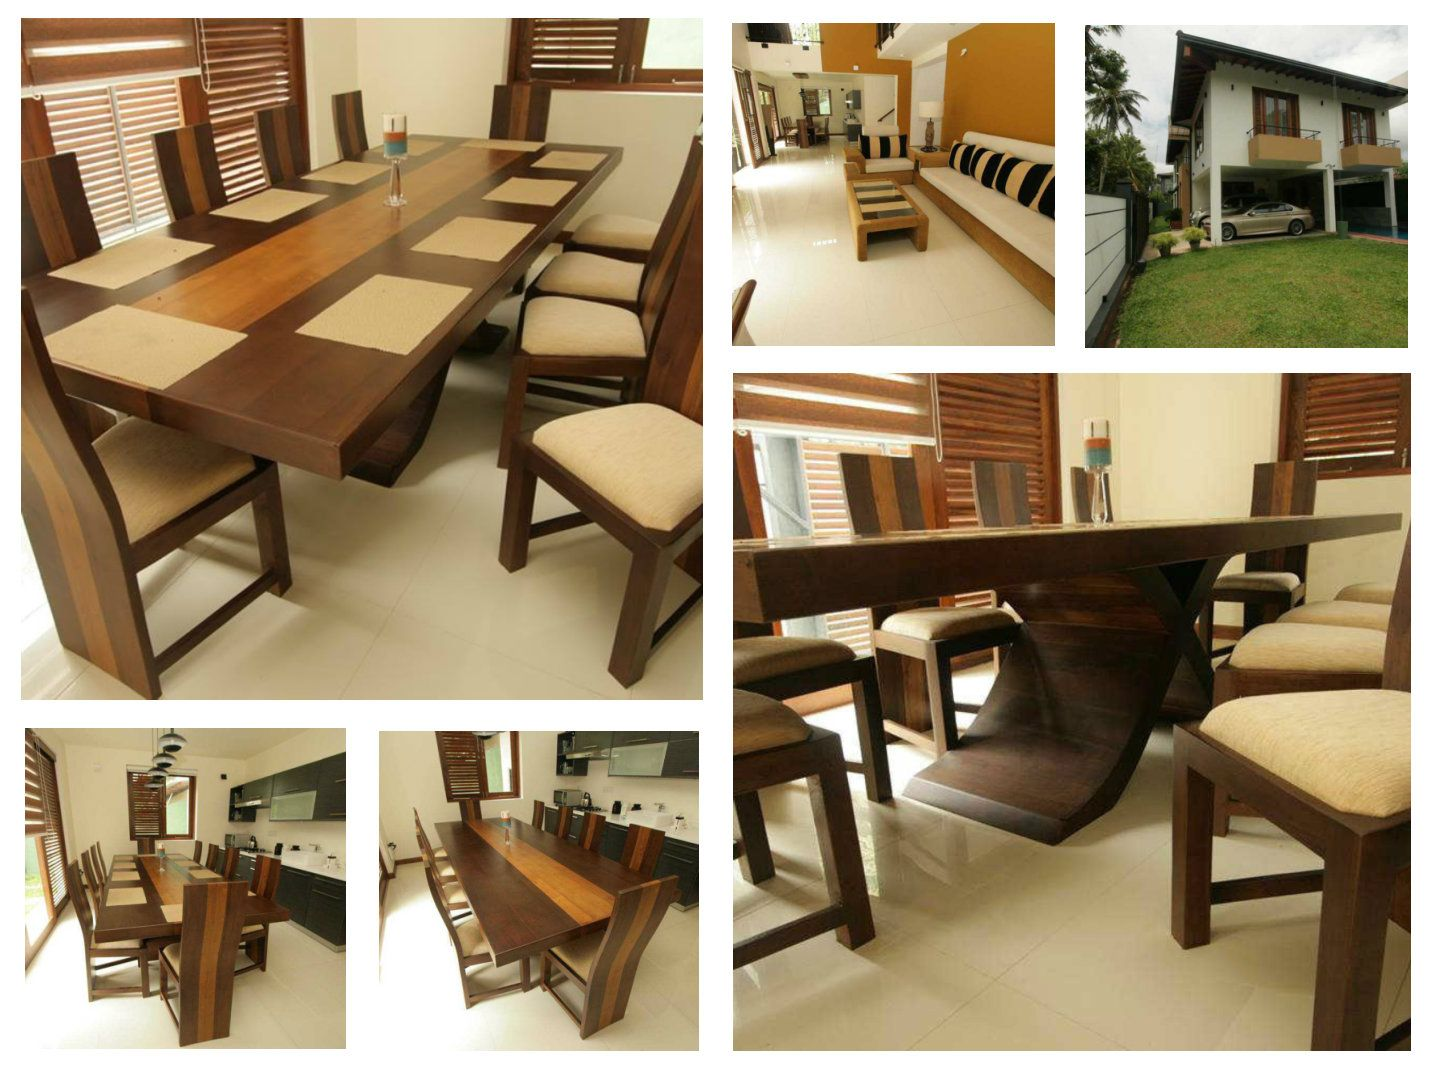 Whether You Re Looking For A Classic Teak Table To Go With Your Indoor Furniture Or You Want A Full Sized Teak Din Furniture Teak Dining Table Indoor Furniture